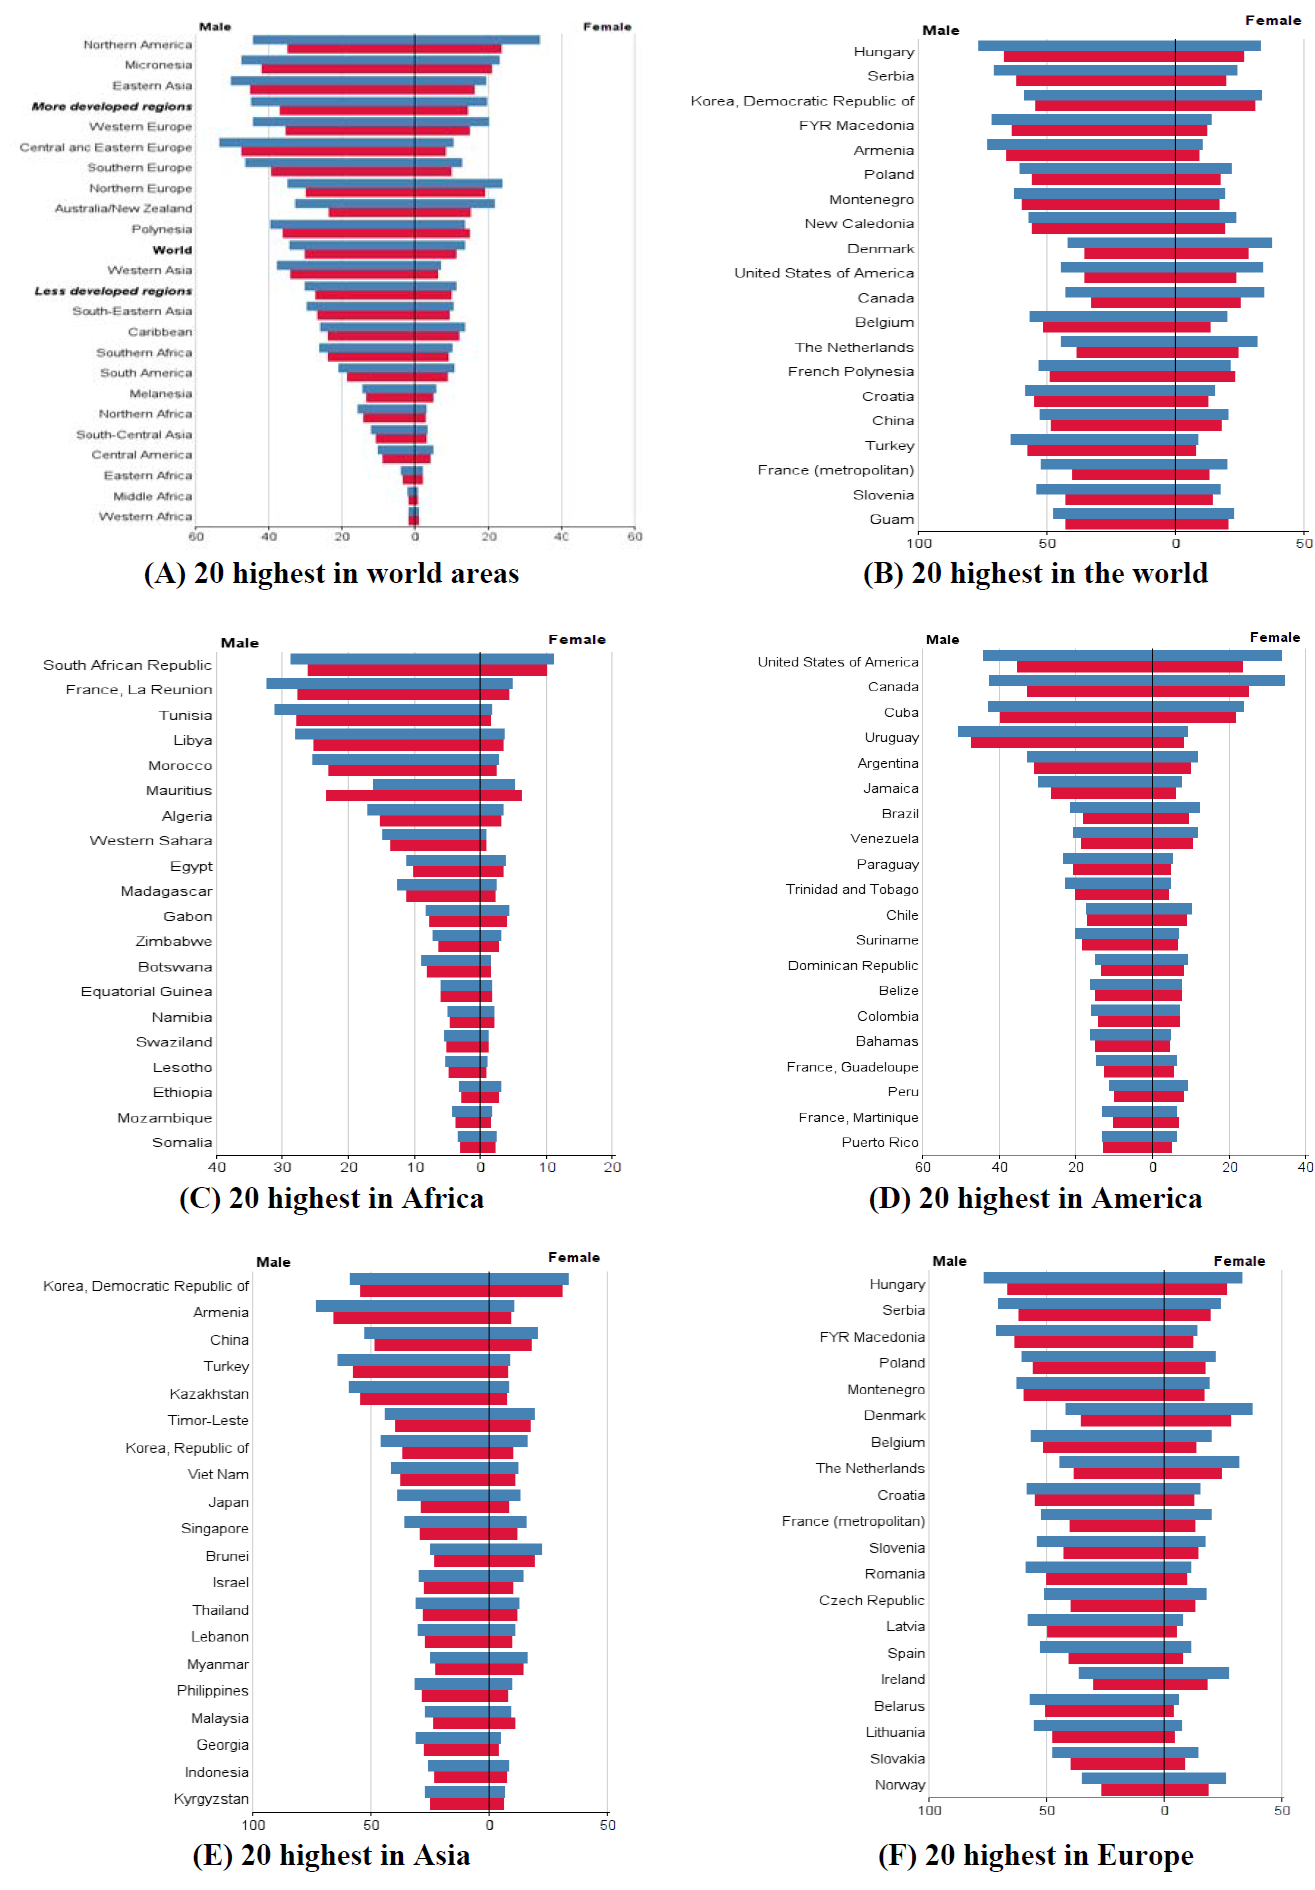 Figure 3 Regions and countries with highest Age-Standardized Incidence Rate (ASIR) and Age-Standardized Mortality Rate (ASMR) of lung cancer in the world